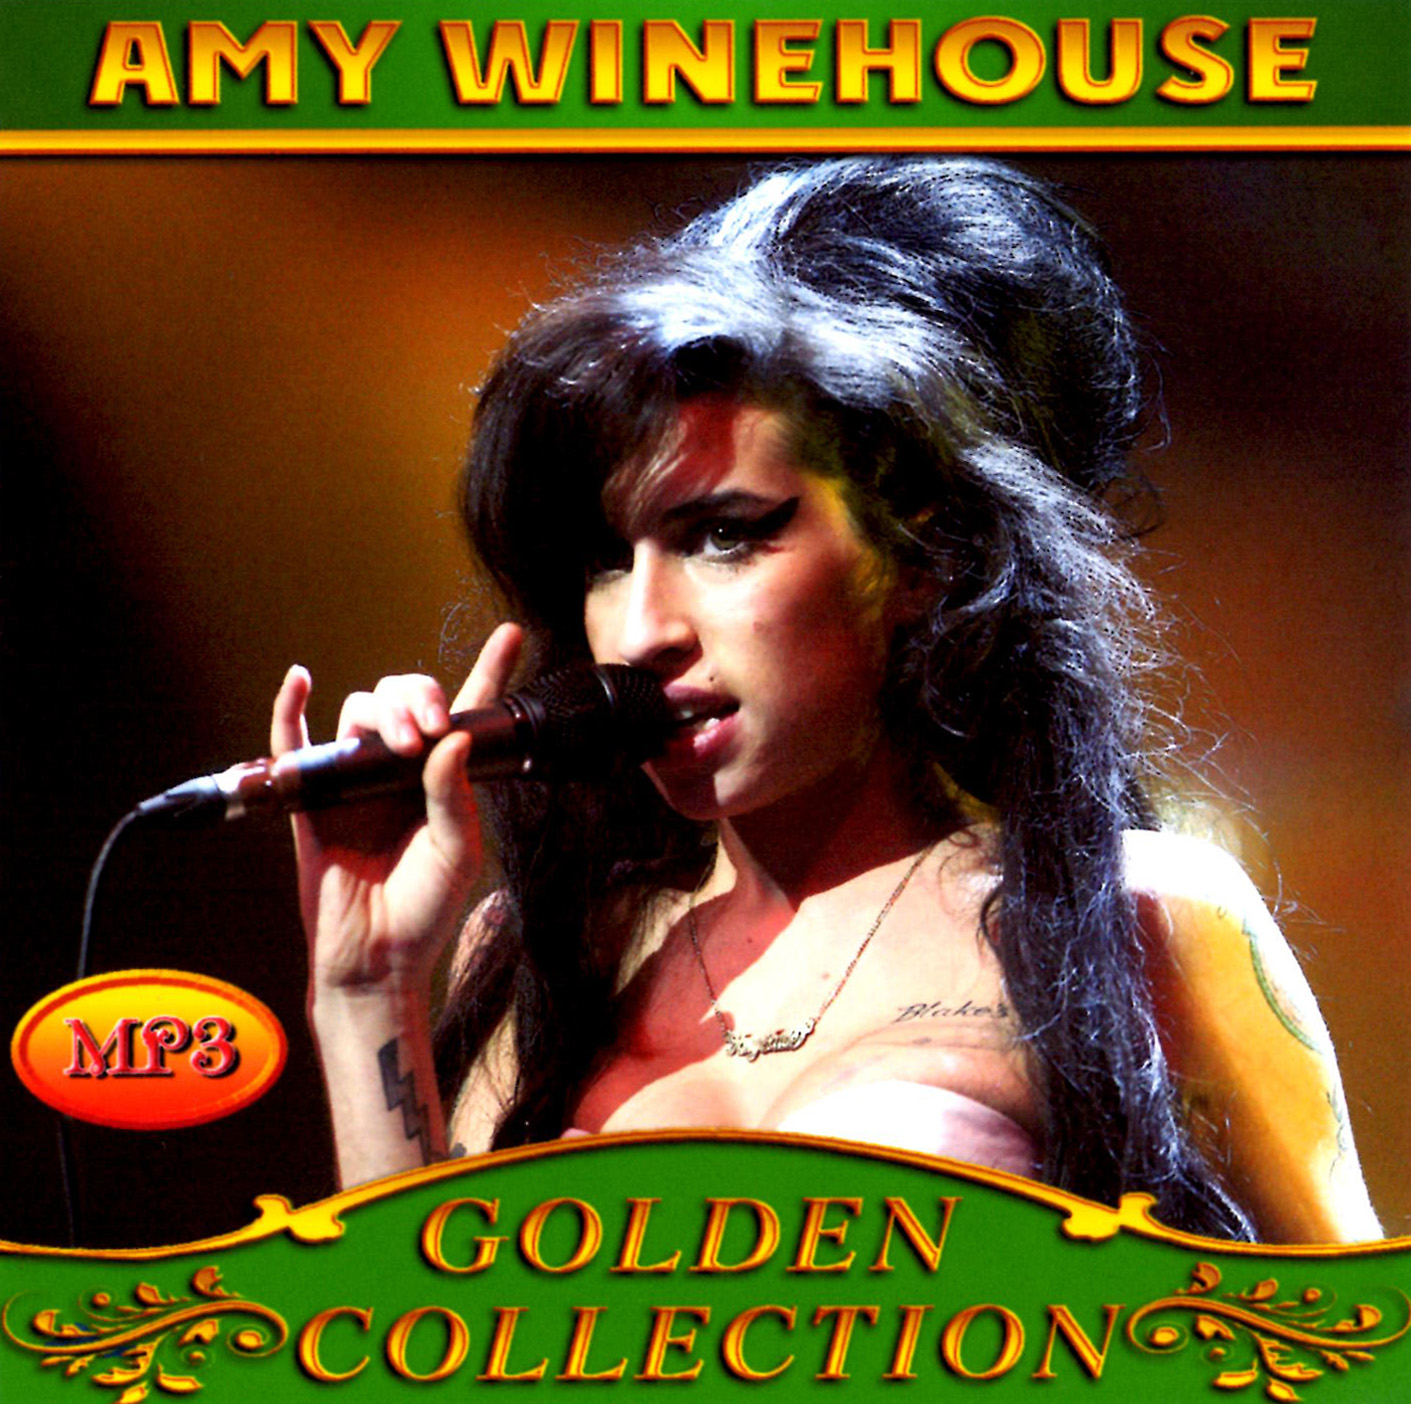 Amy Winehouse [mp3]